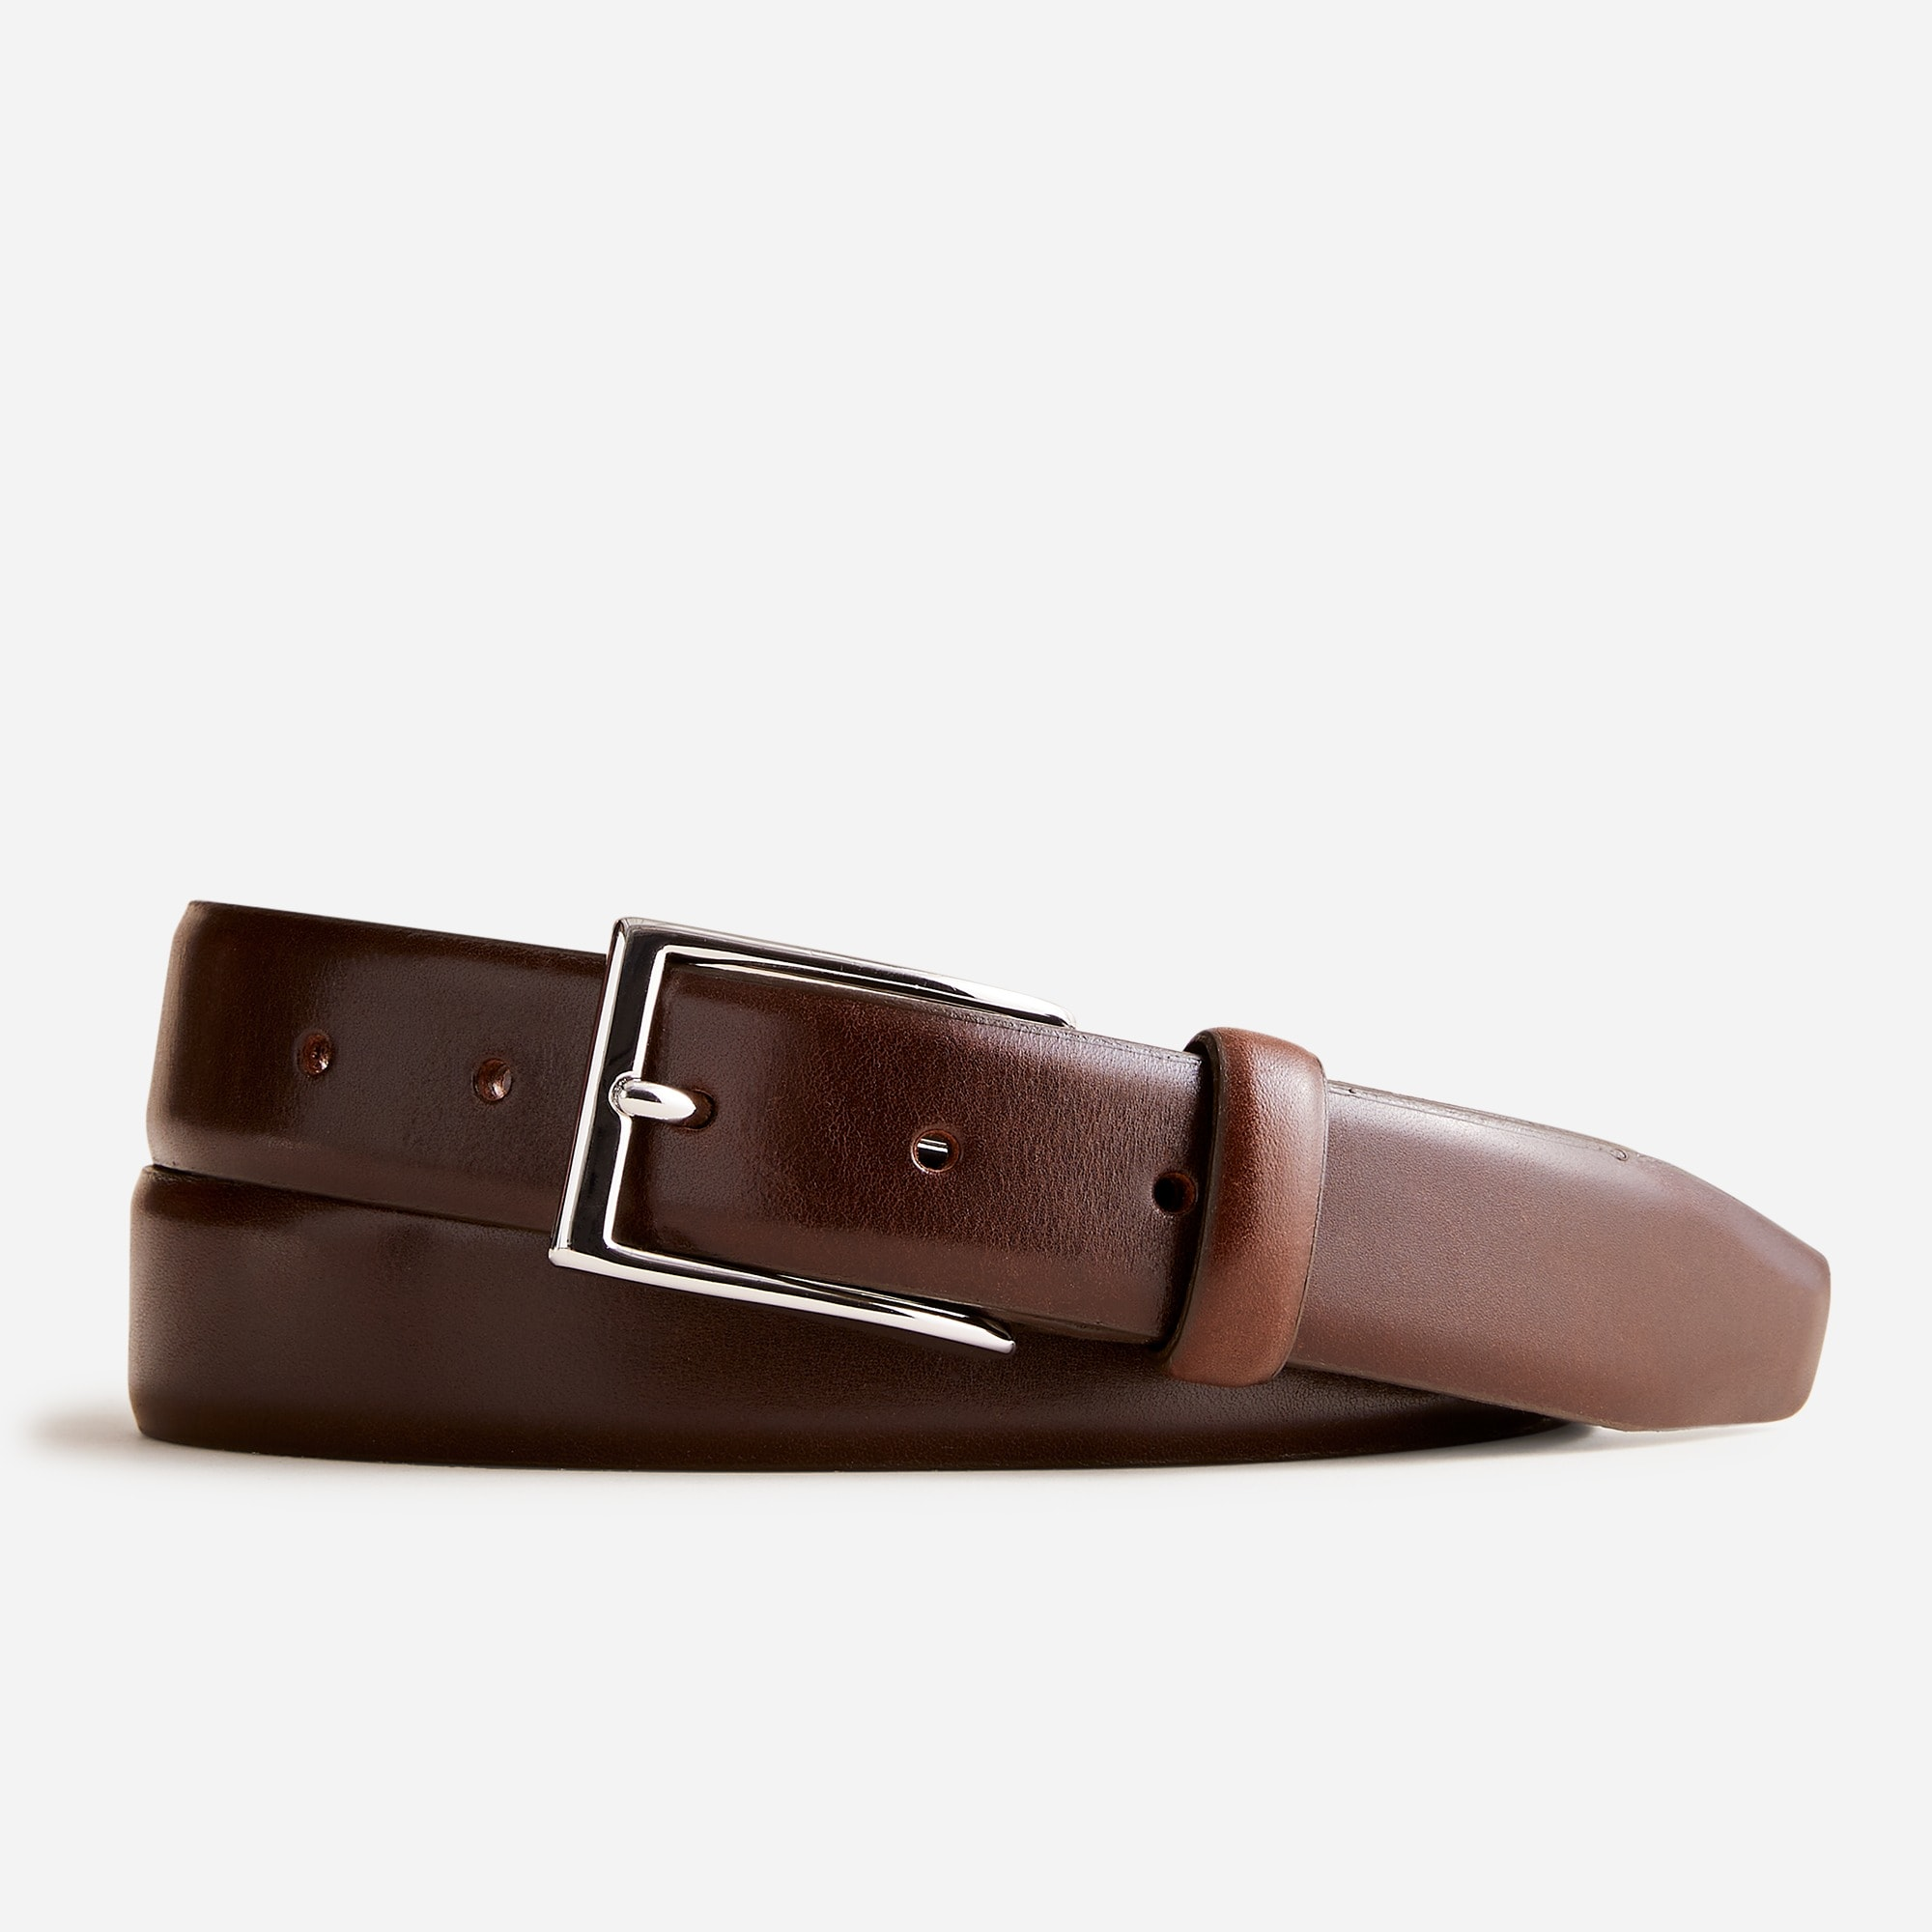 mens Italian leather dress belt